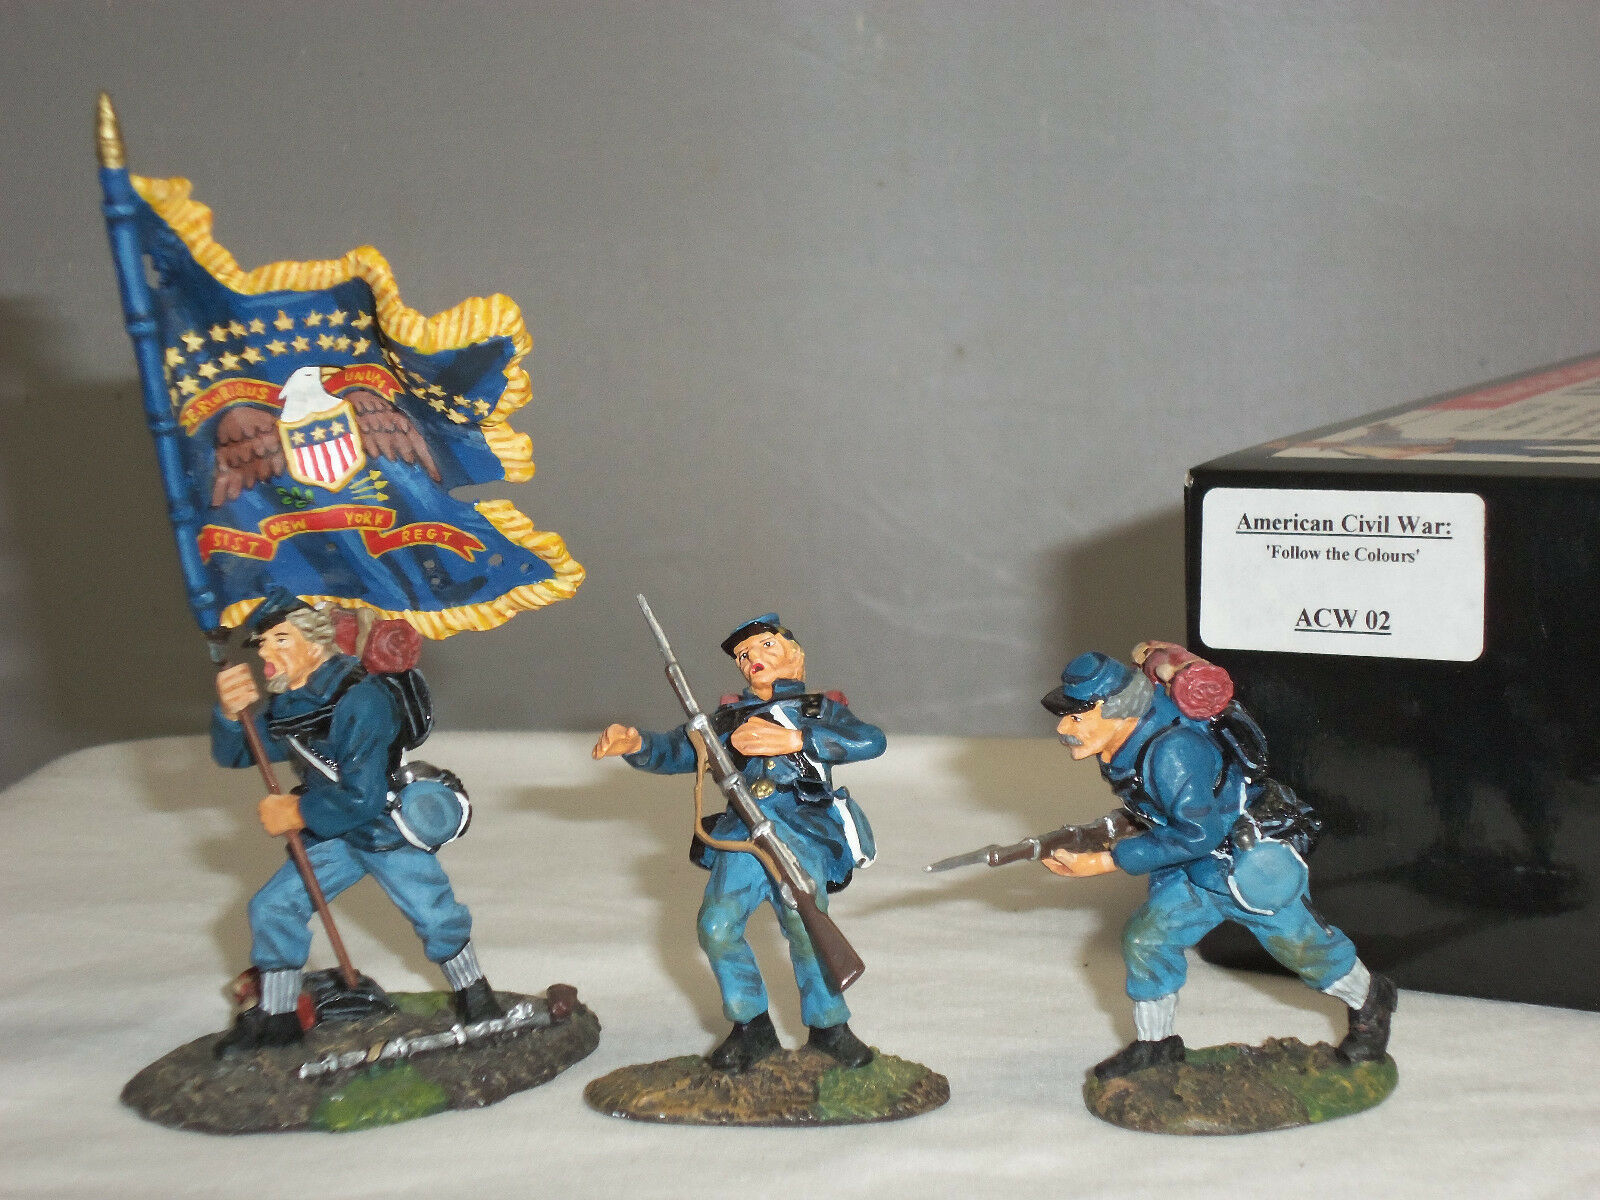 KING AND COUNTRY ACW02 FOLLOW THE COLORS AMERCAN CIVIL WAR TOY SOLDIER SET